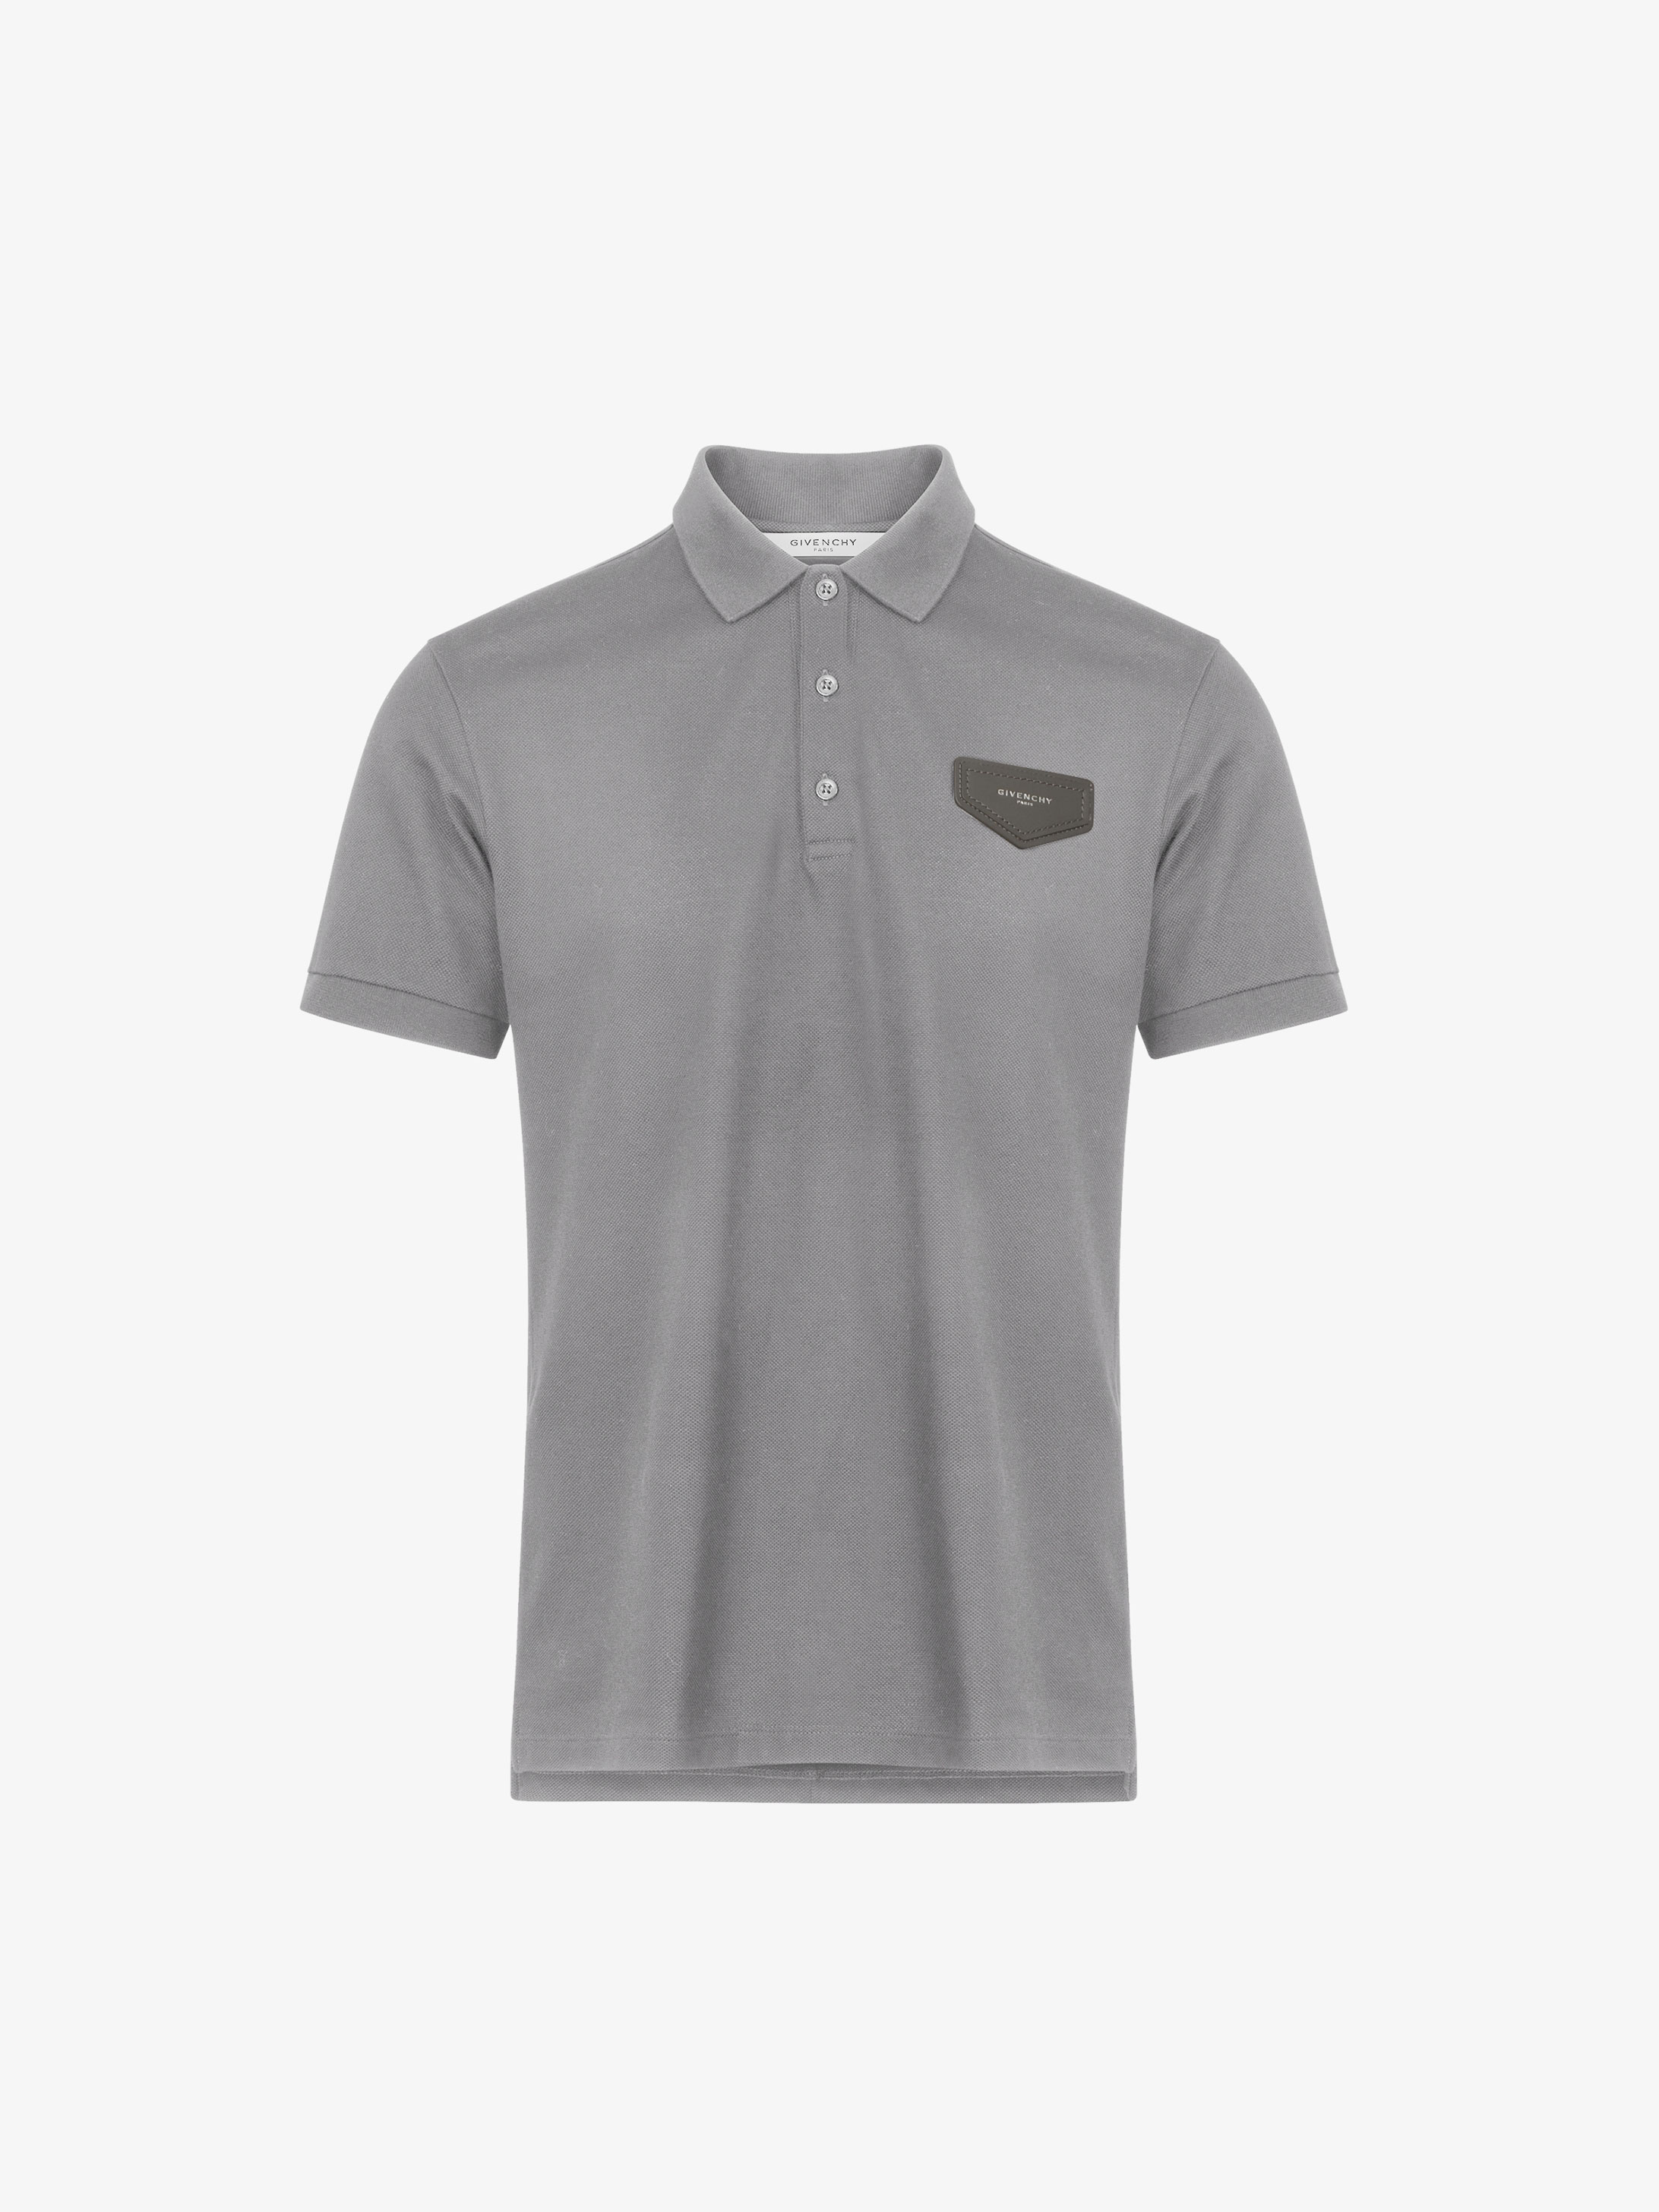 GIVENCHY patch polo shirt in cotton